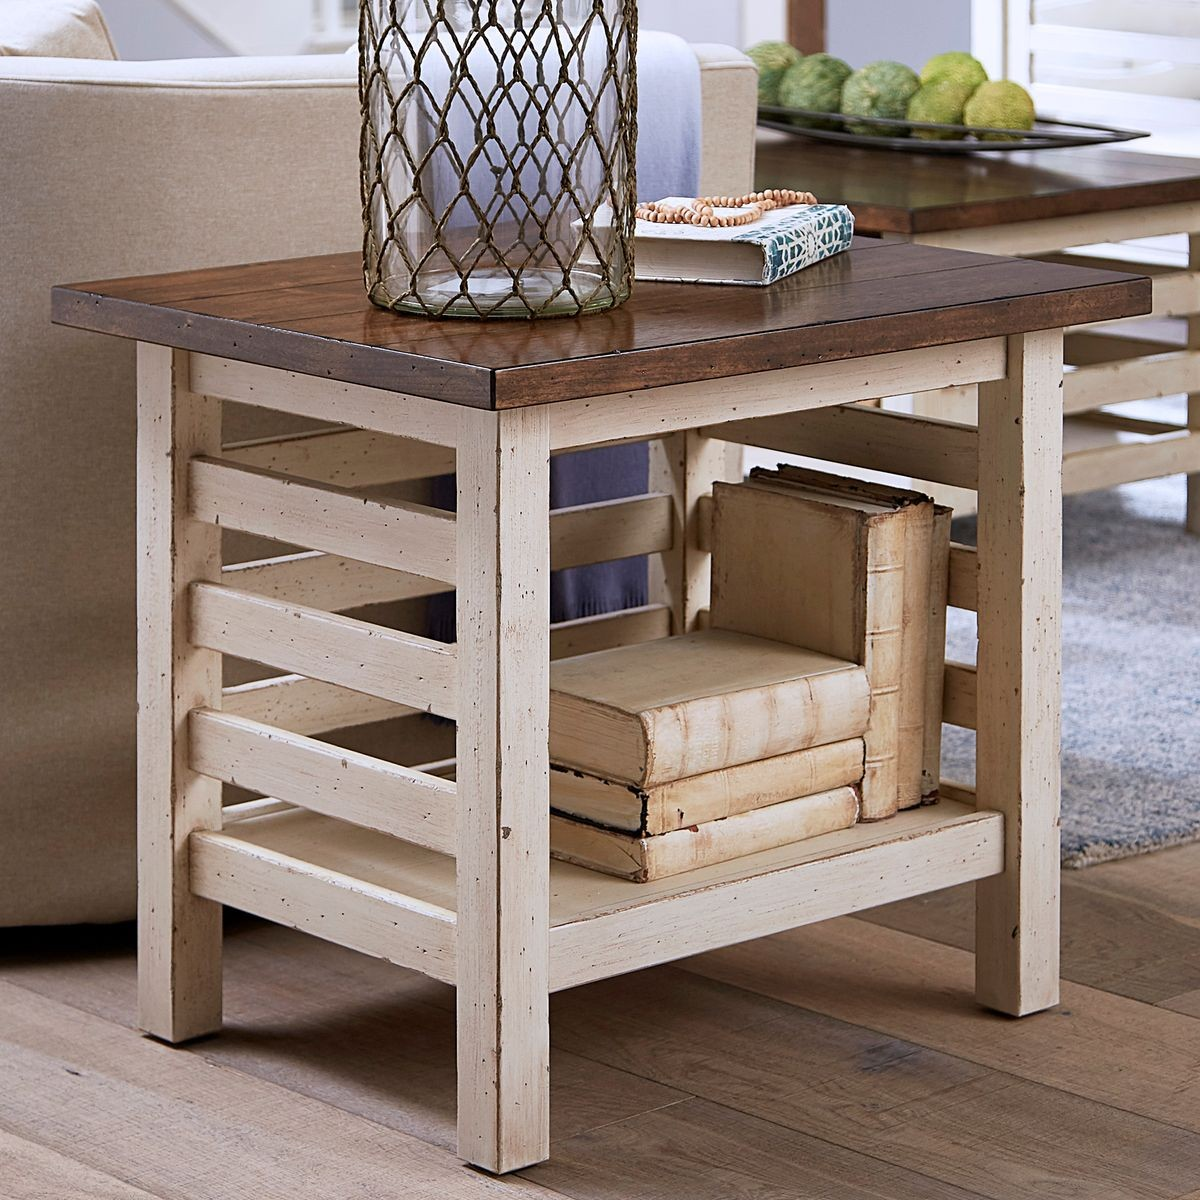 aspen home modern farmhouse end table with shelf cotton ctn tables sofa desk furniture sauder office storage cabinets rustic wood and glass coffee what pallet console width